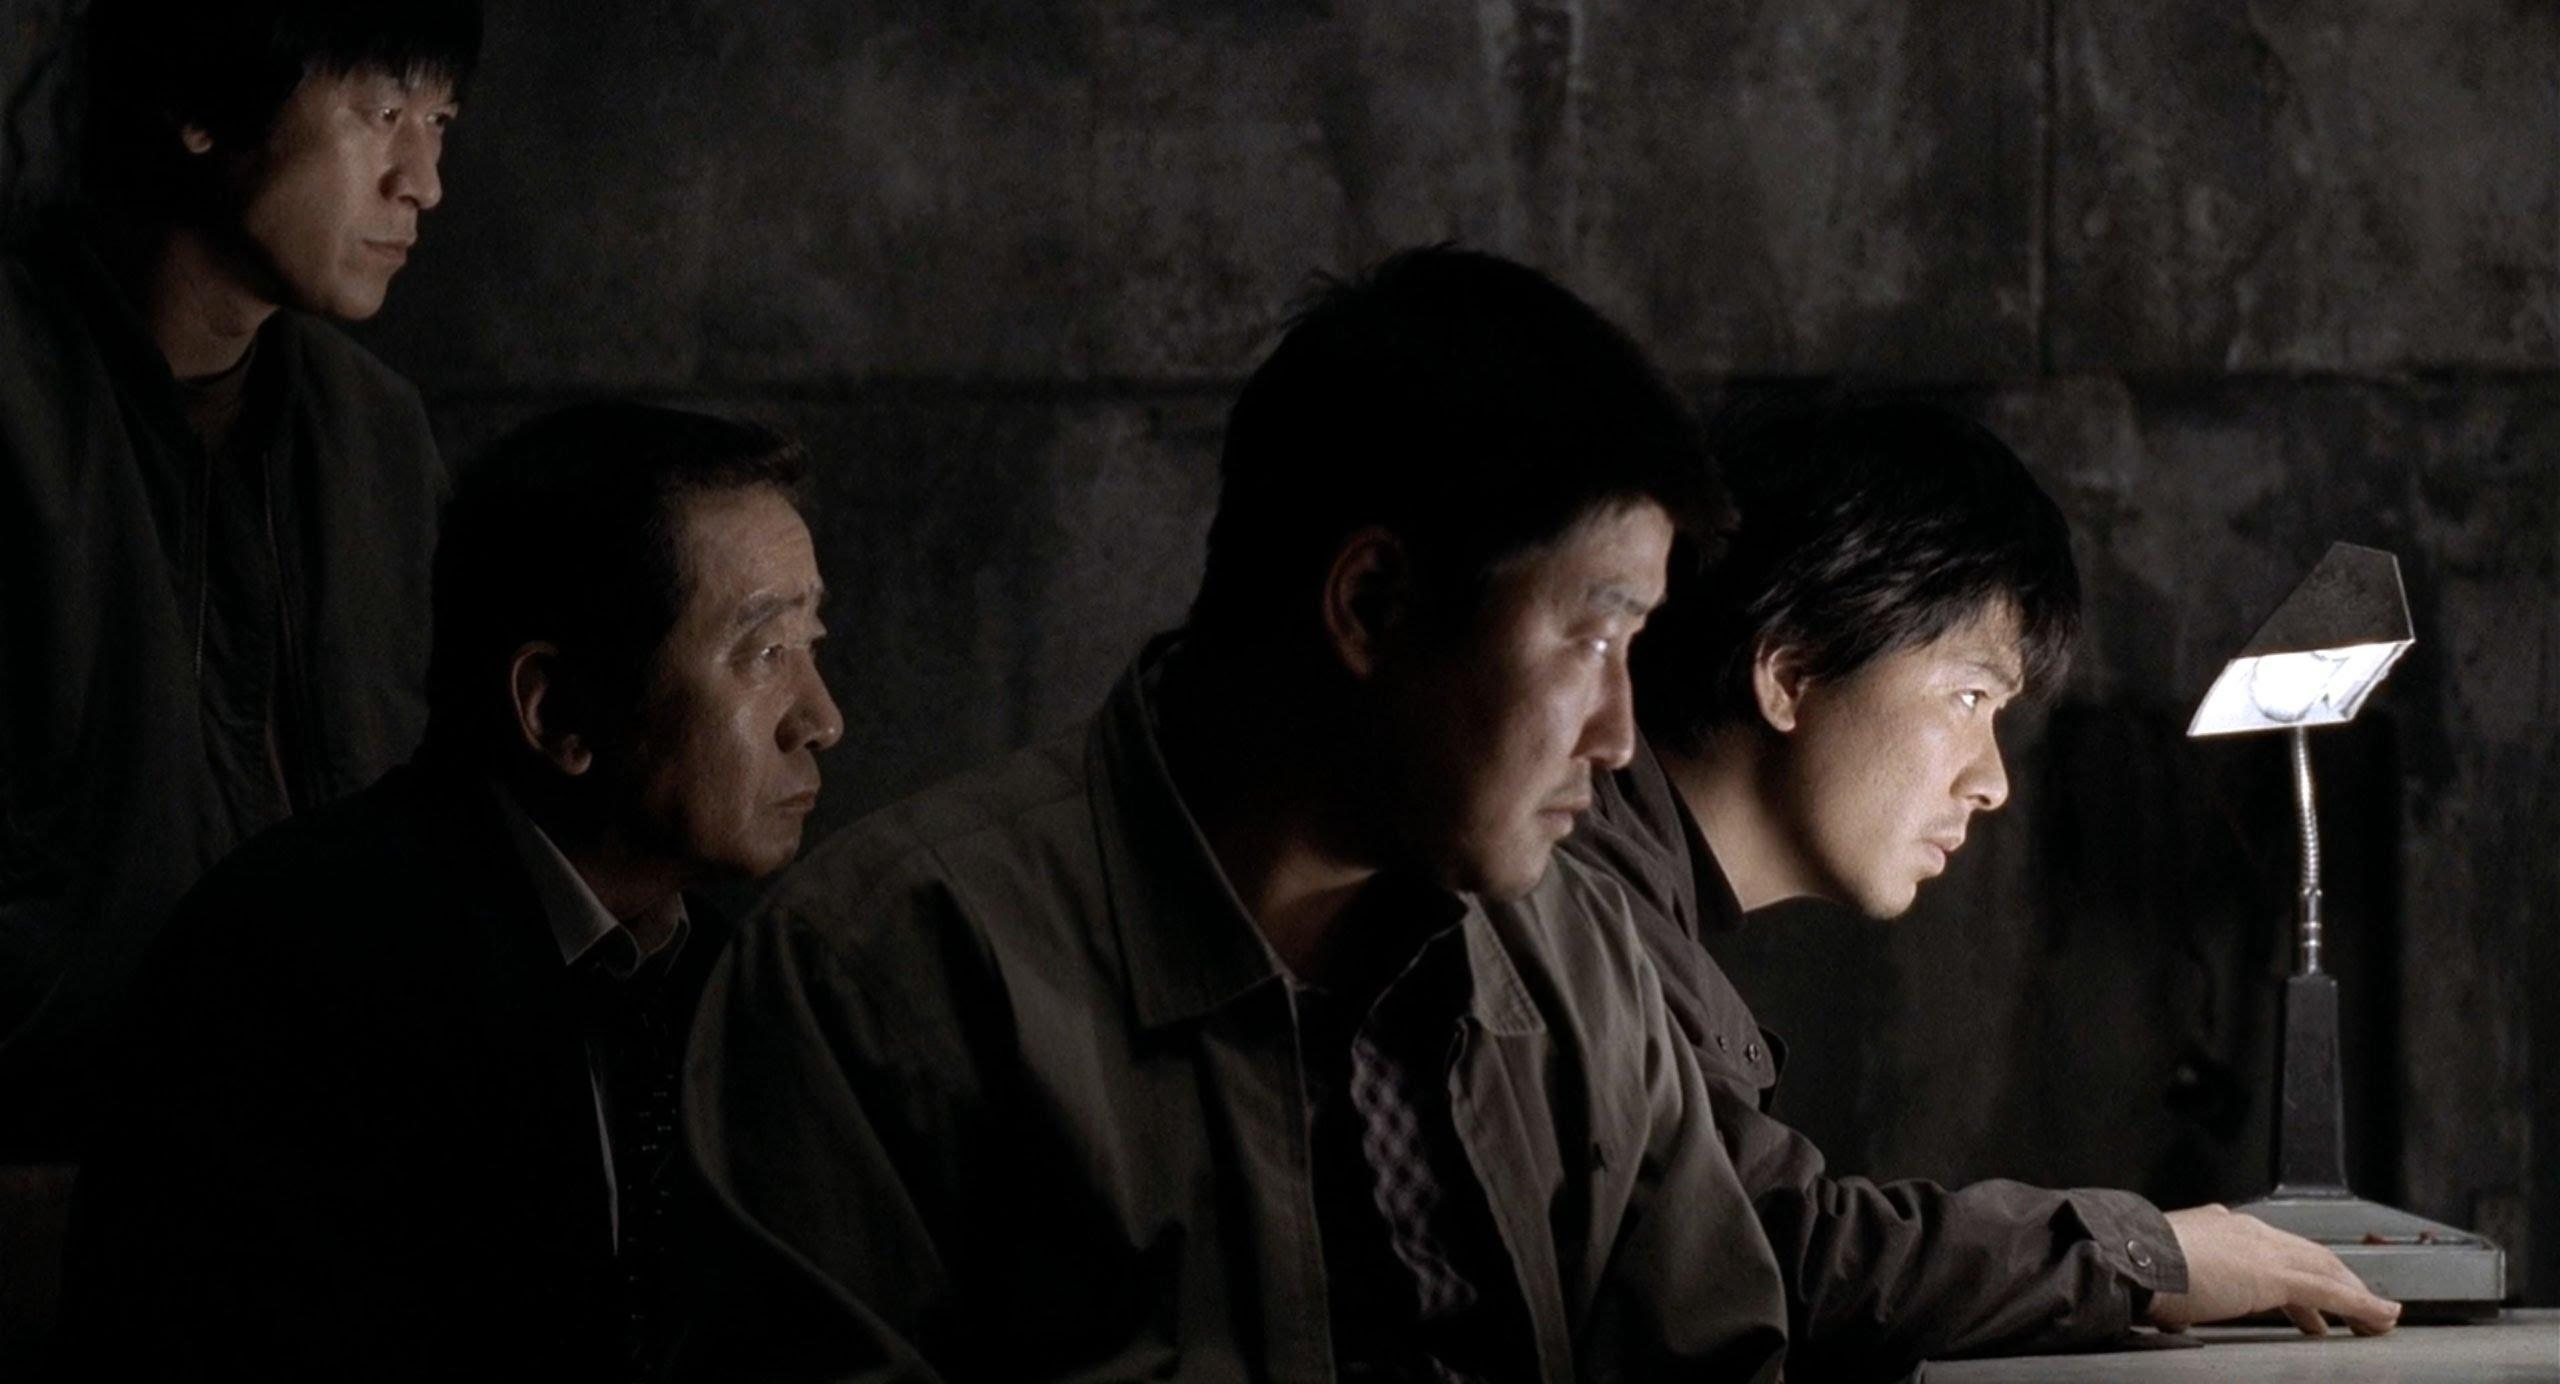 Daylightpeople.com Memories of Murder (2003) - Ensemble Staging